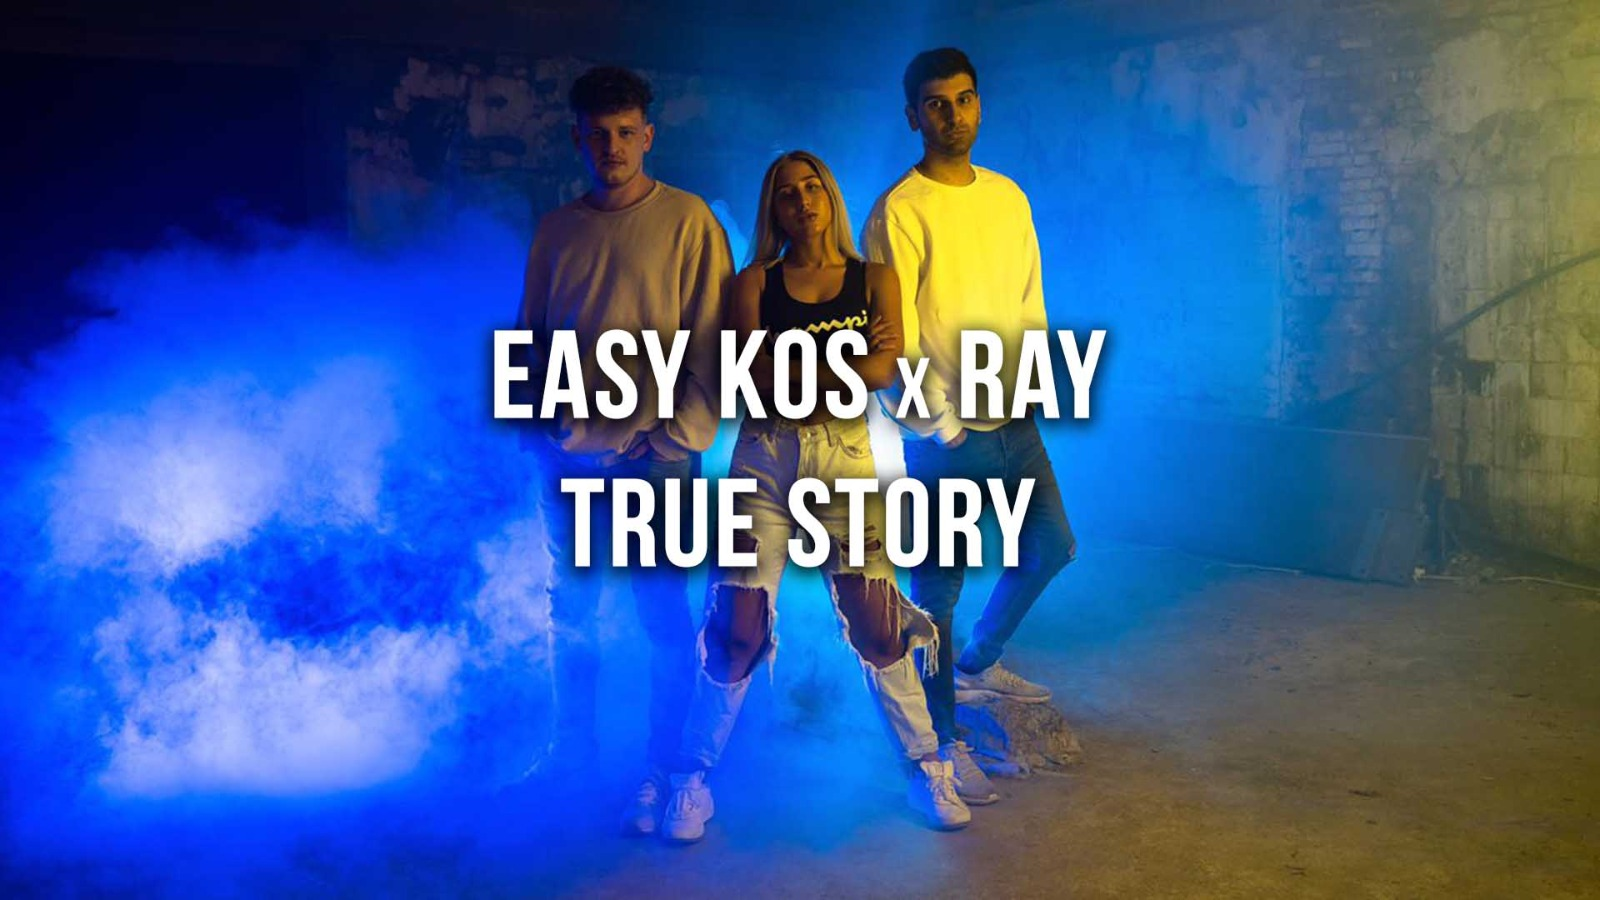 Upcoming: Easy Kos x Ray - True Story (Prod. By Apes)